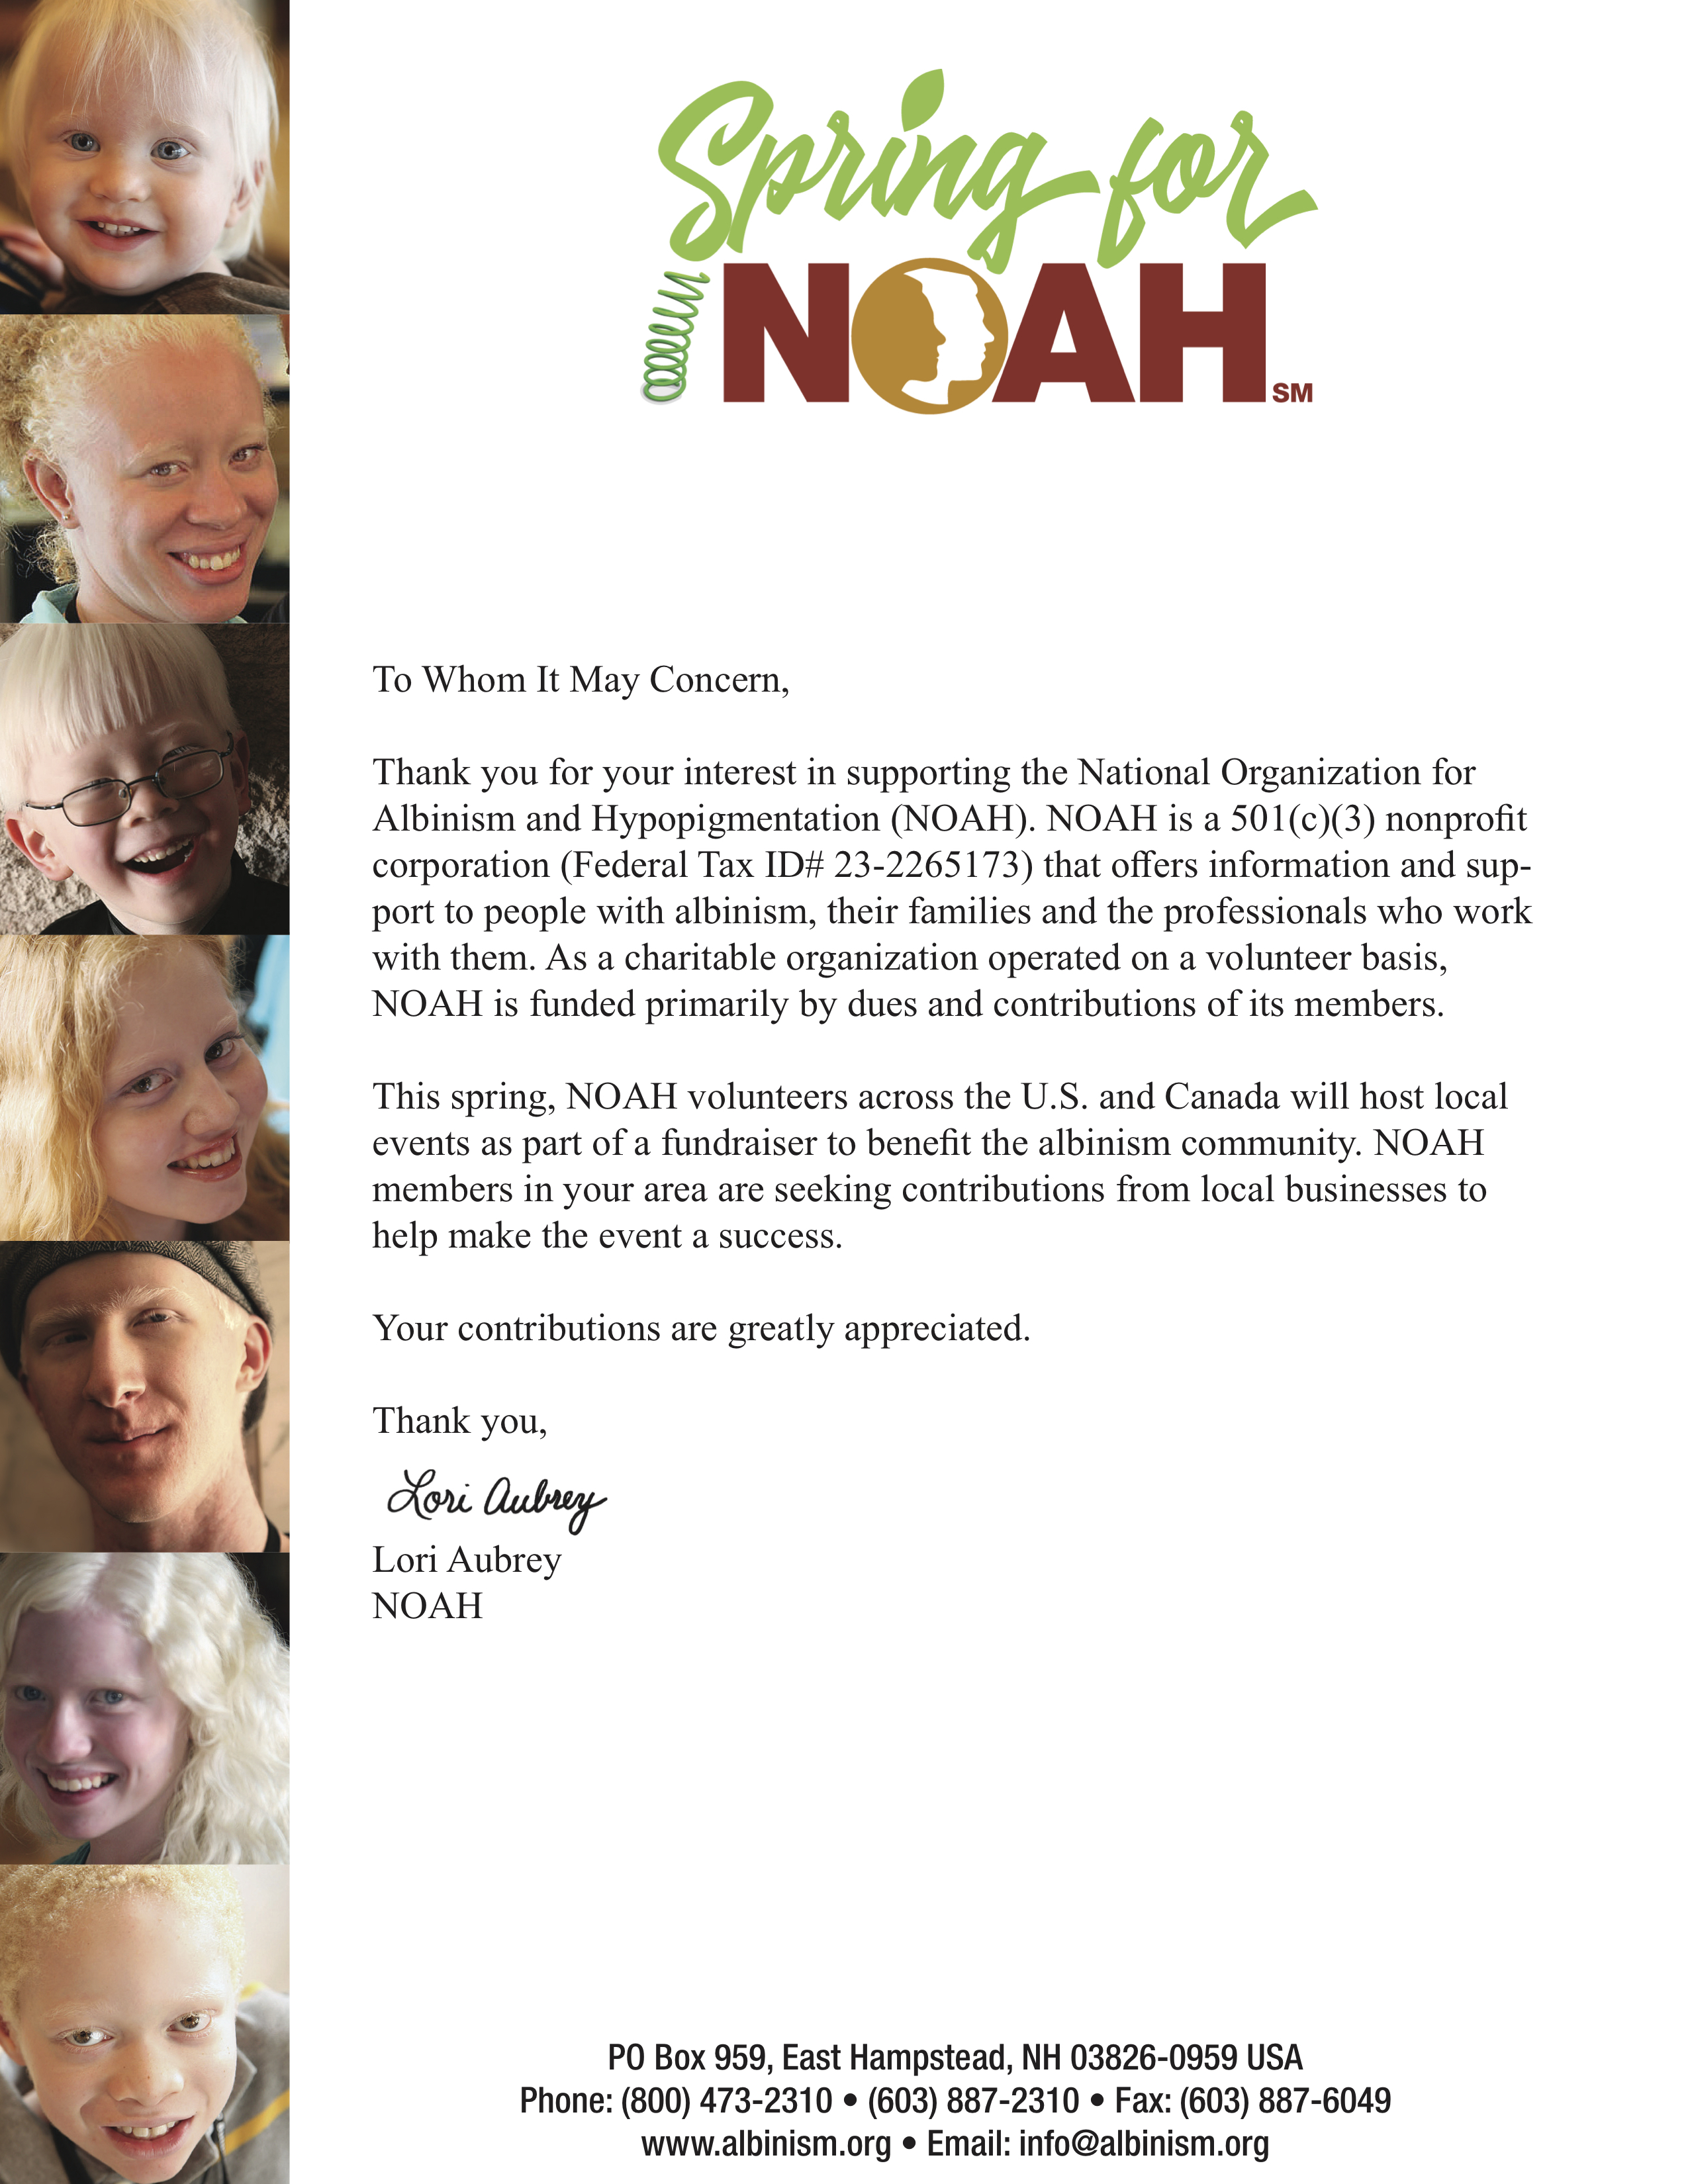 Spring for NOAH Fundraiser Official Verification Solicitation Letter